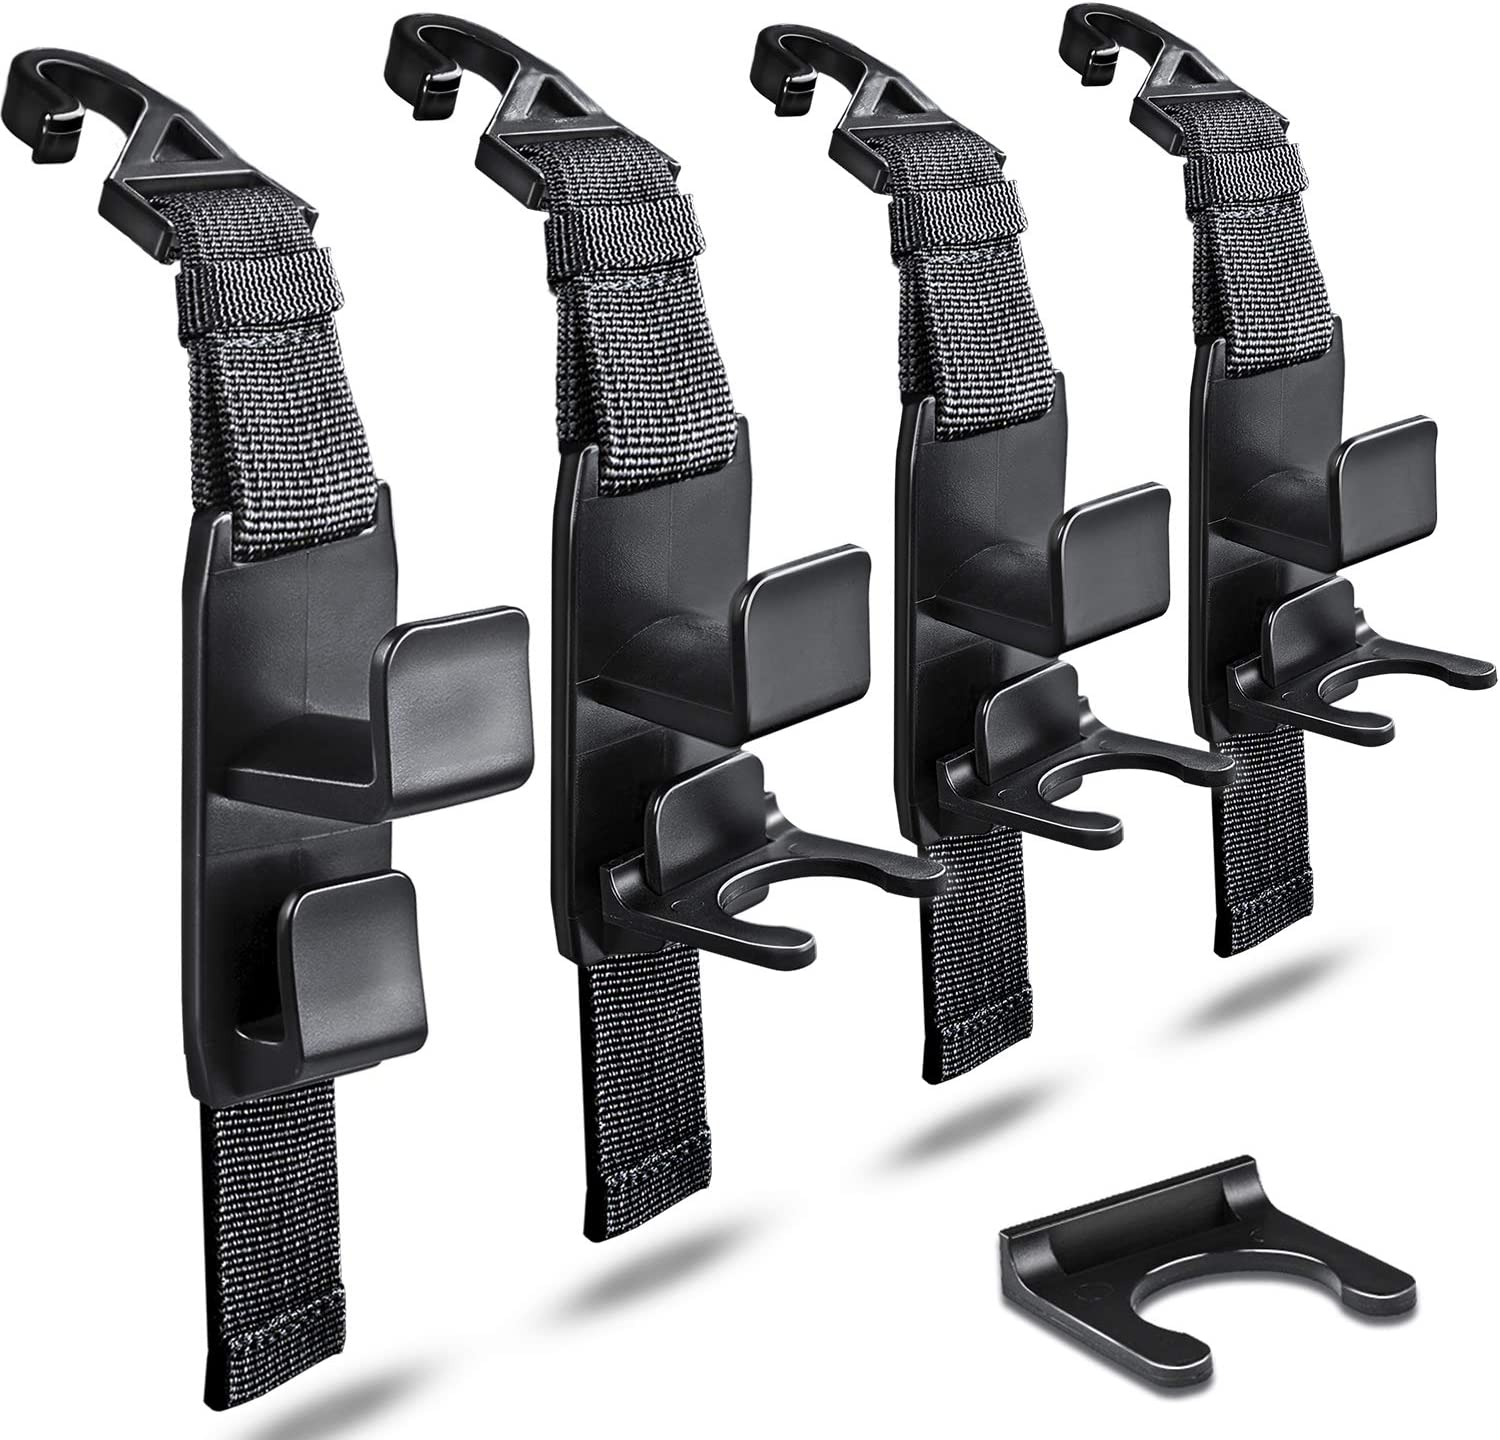 Frosted Black Heroway matteblack Magic Hanger Headrest Holder Organizer Behind Over The Seat Car Hooks-Hang Purse Grocery Bags-4Pack